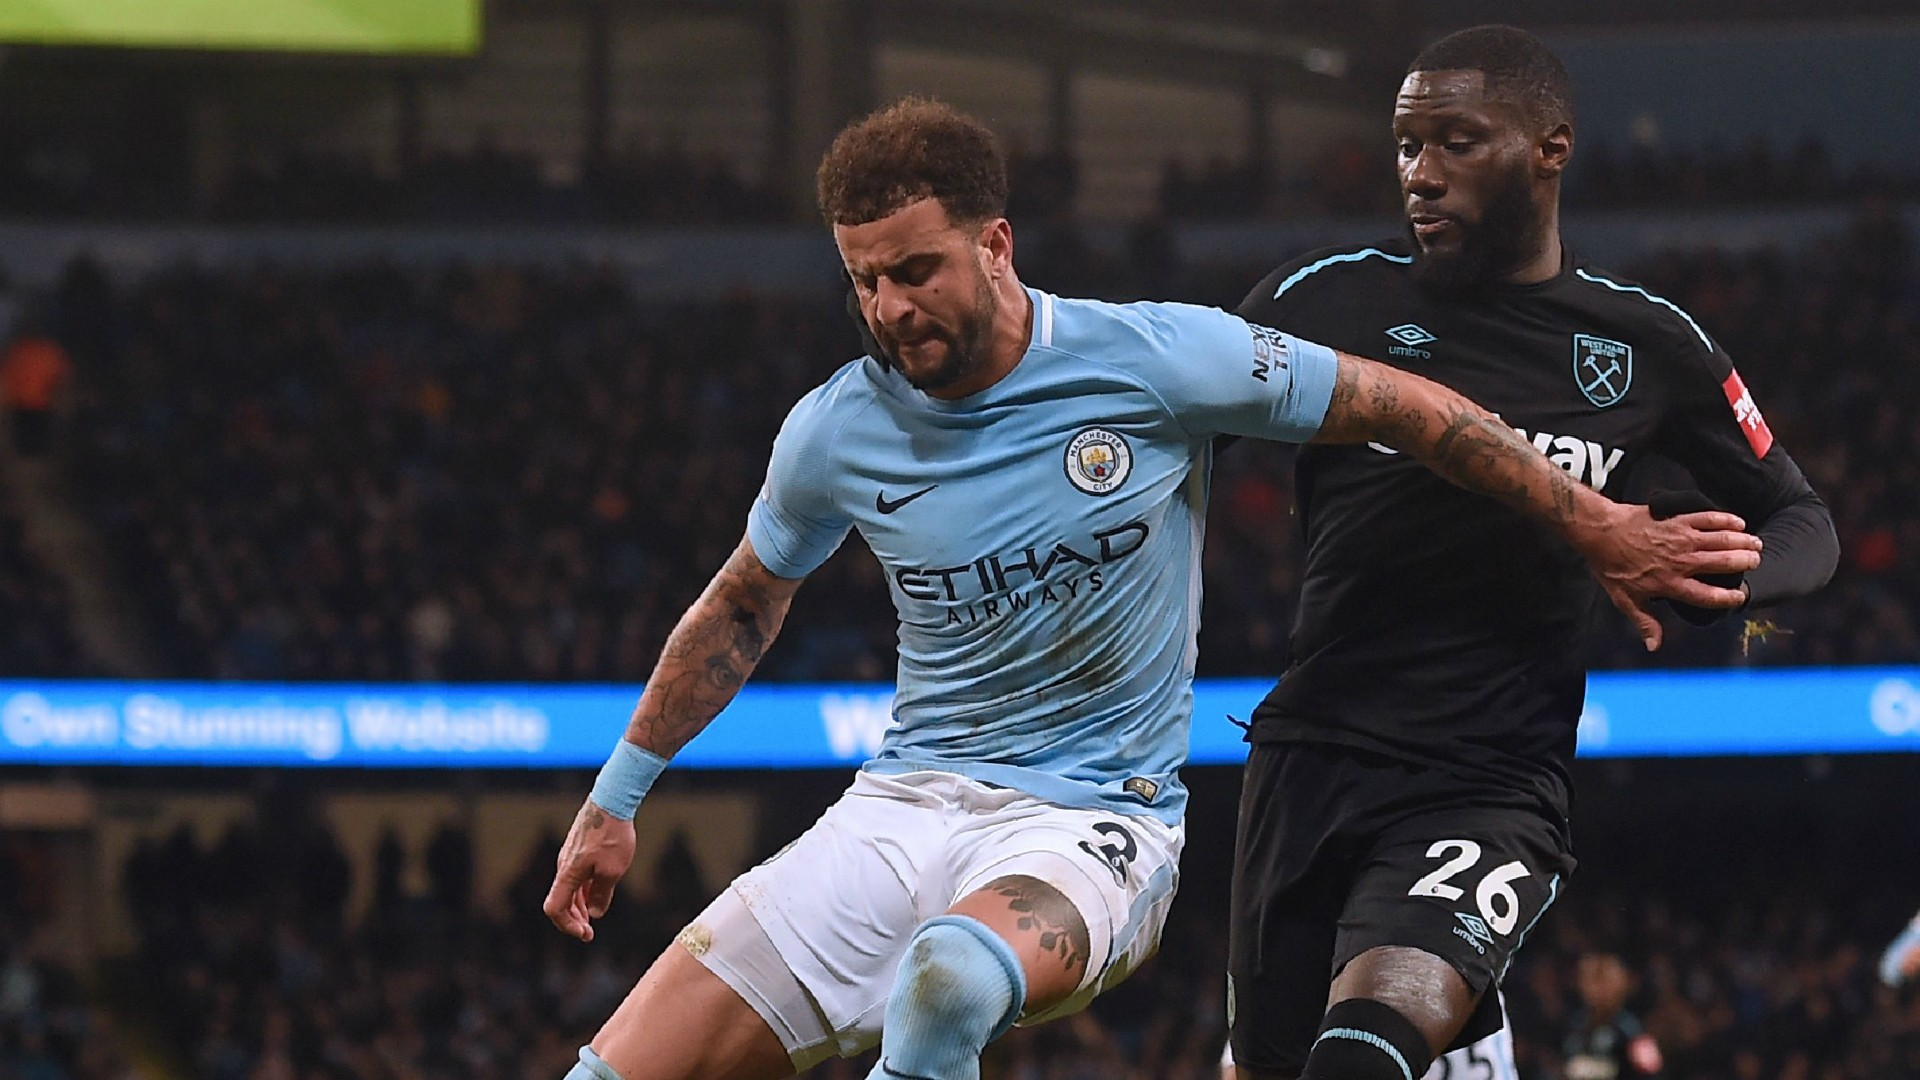 https://images.performgroup.com/di/library/GOAL/dd/a3/kyle-walker-premier-league-team-of-the-week_3tm52397sose1wbs8r54yq5ma.jpg?t=496432032&quality=90&w=0&h=1260